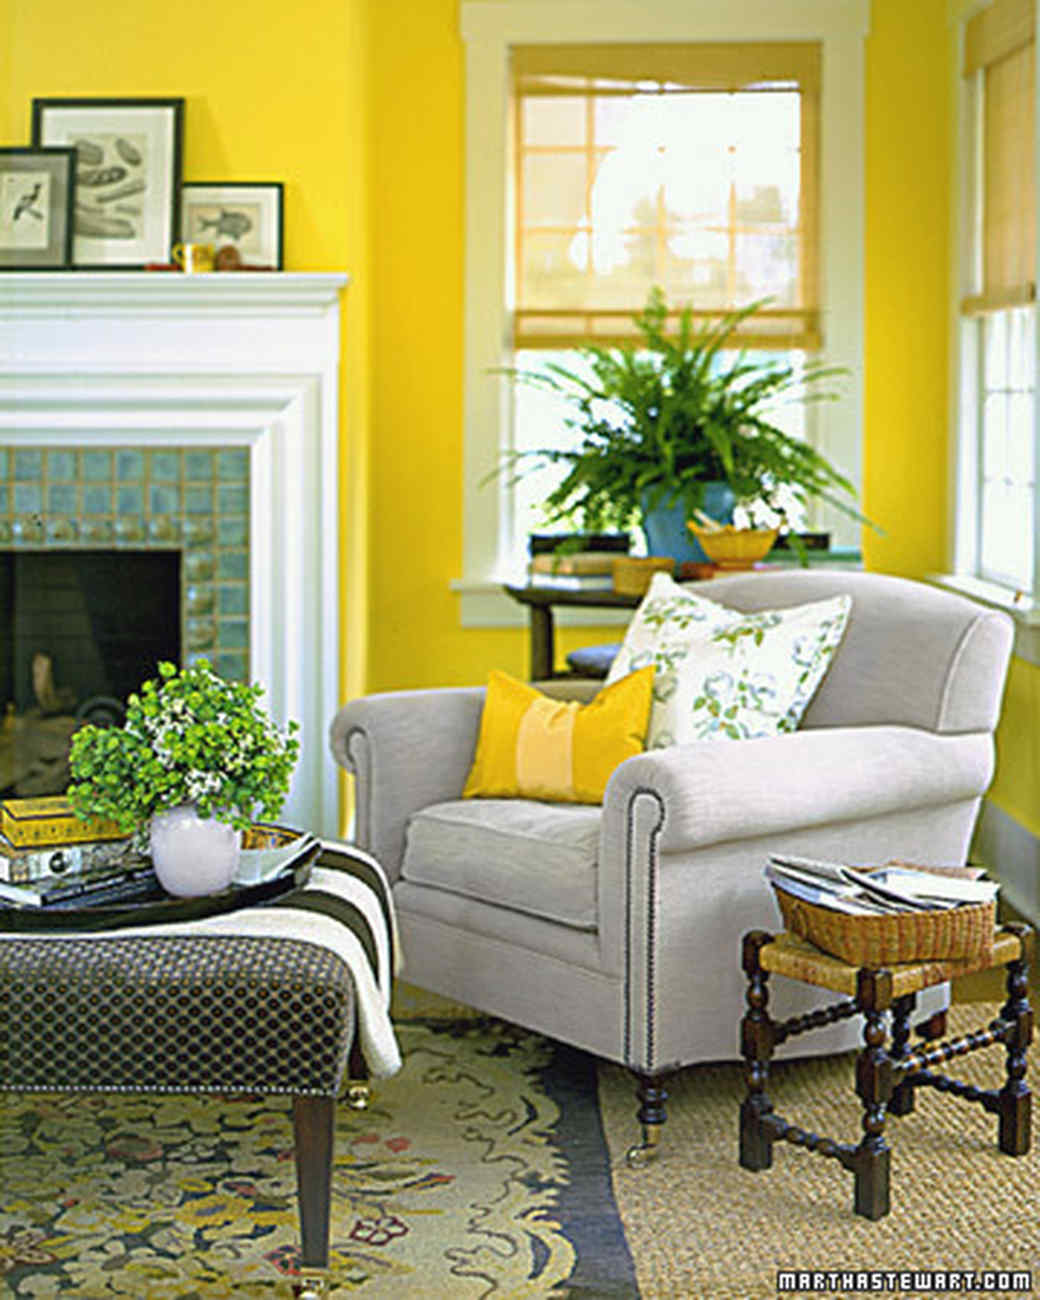 Bright Colors For Living Room Plans yellow rooms | martha stewart